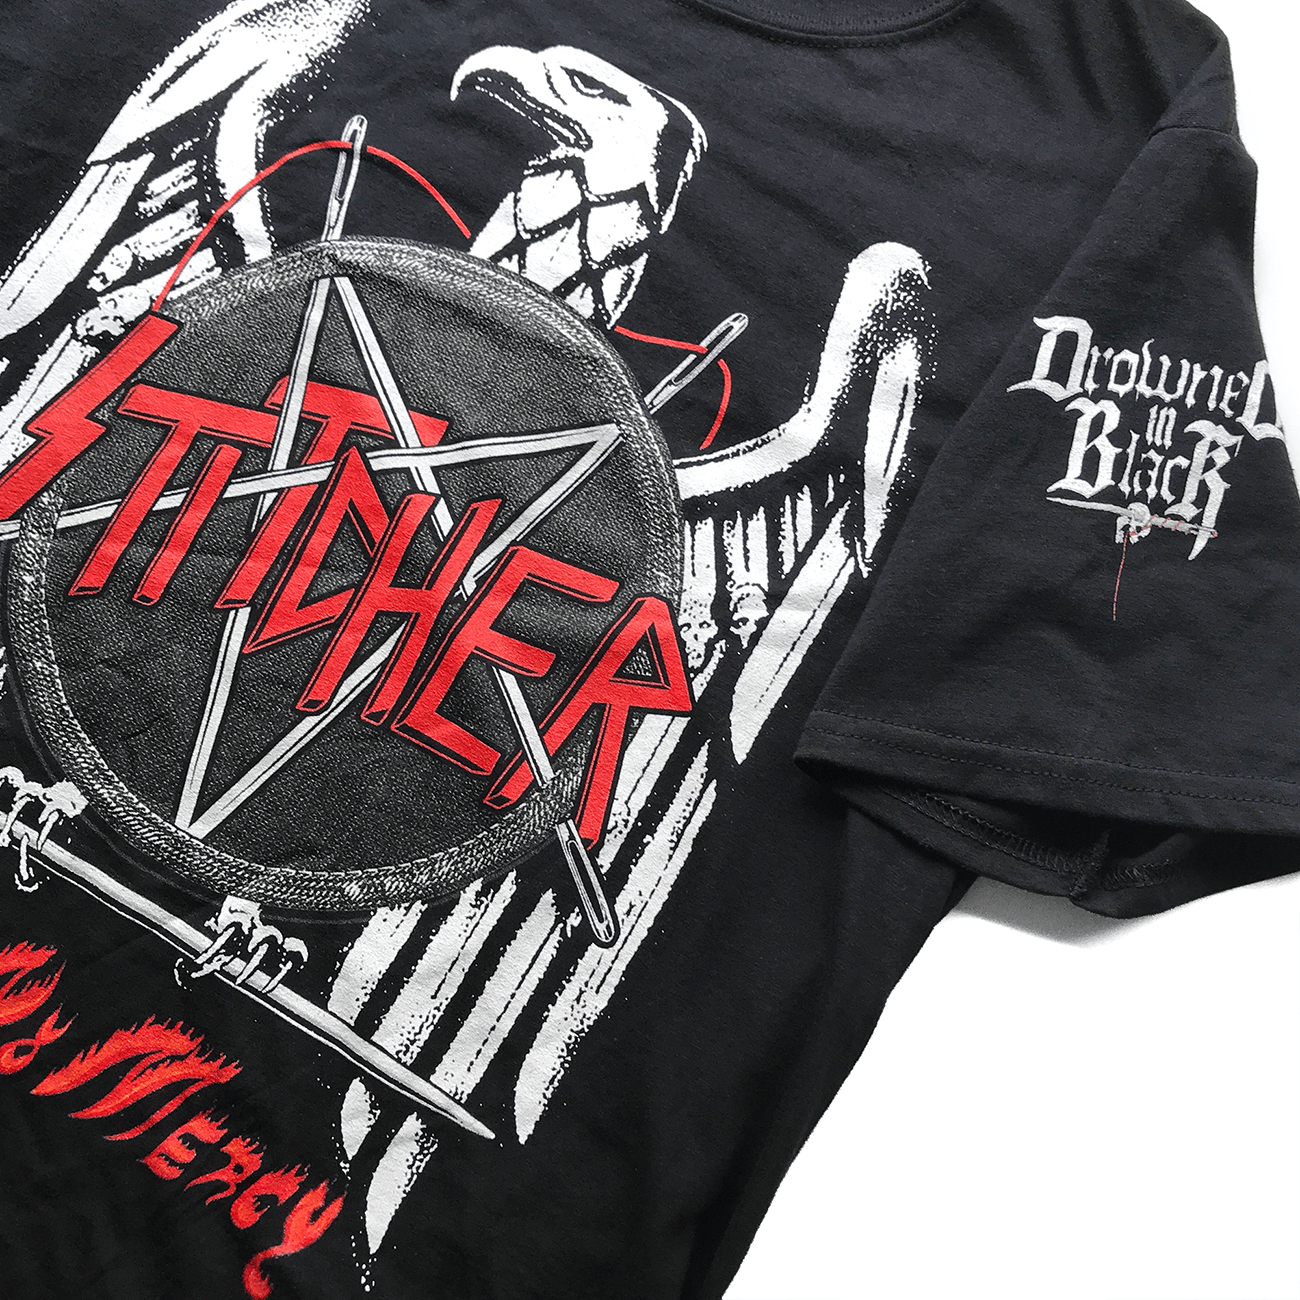 Sew No Mercy T-Shirt